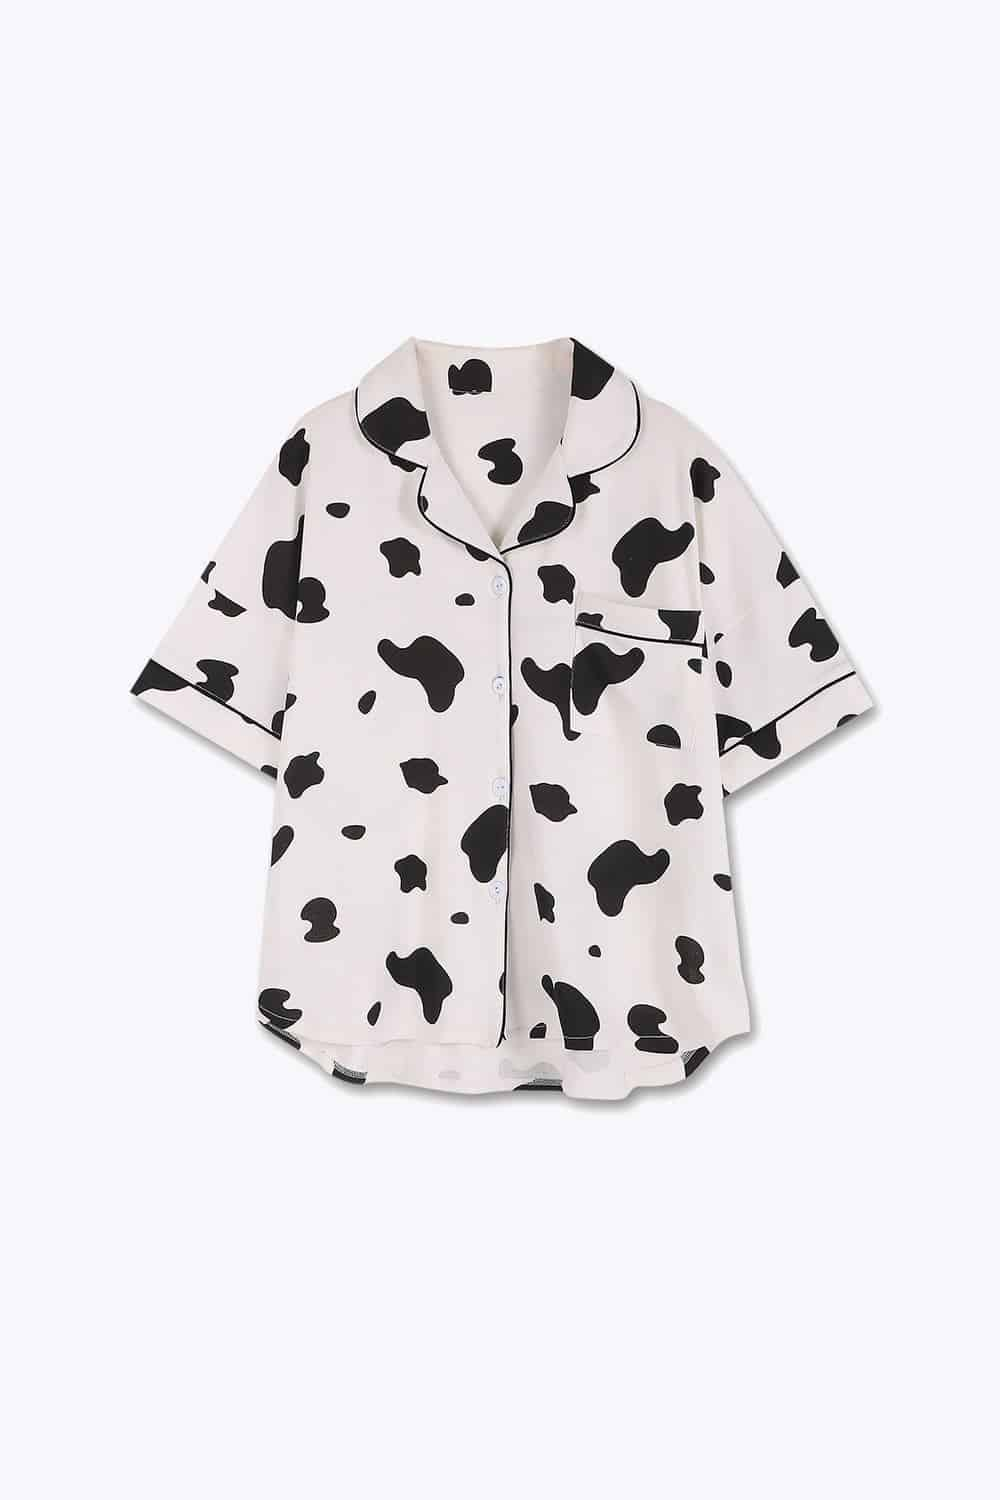 Women Cow Print Cotton Short Pajamas Set